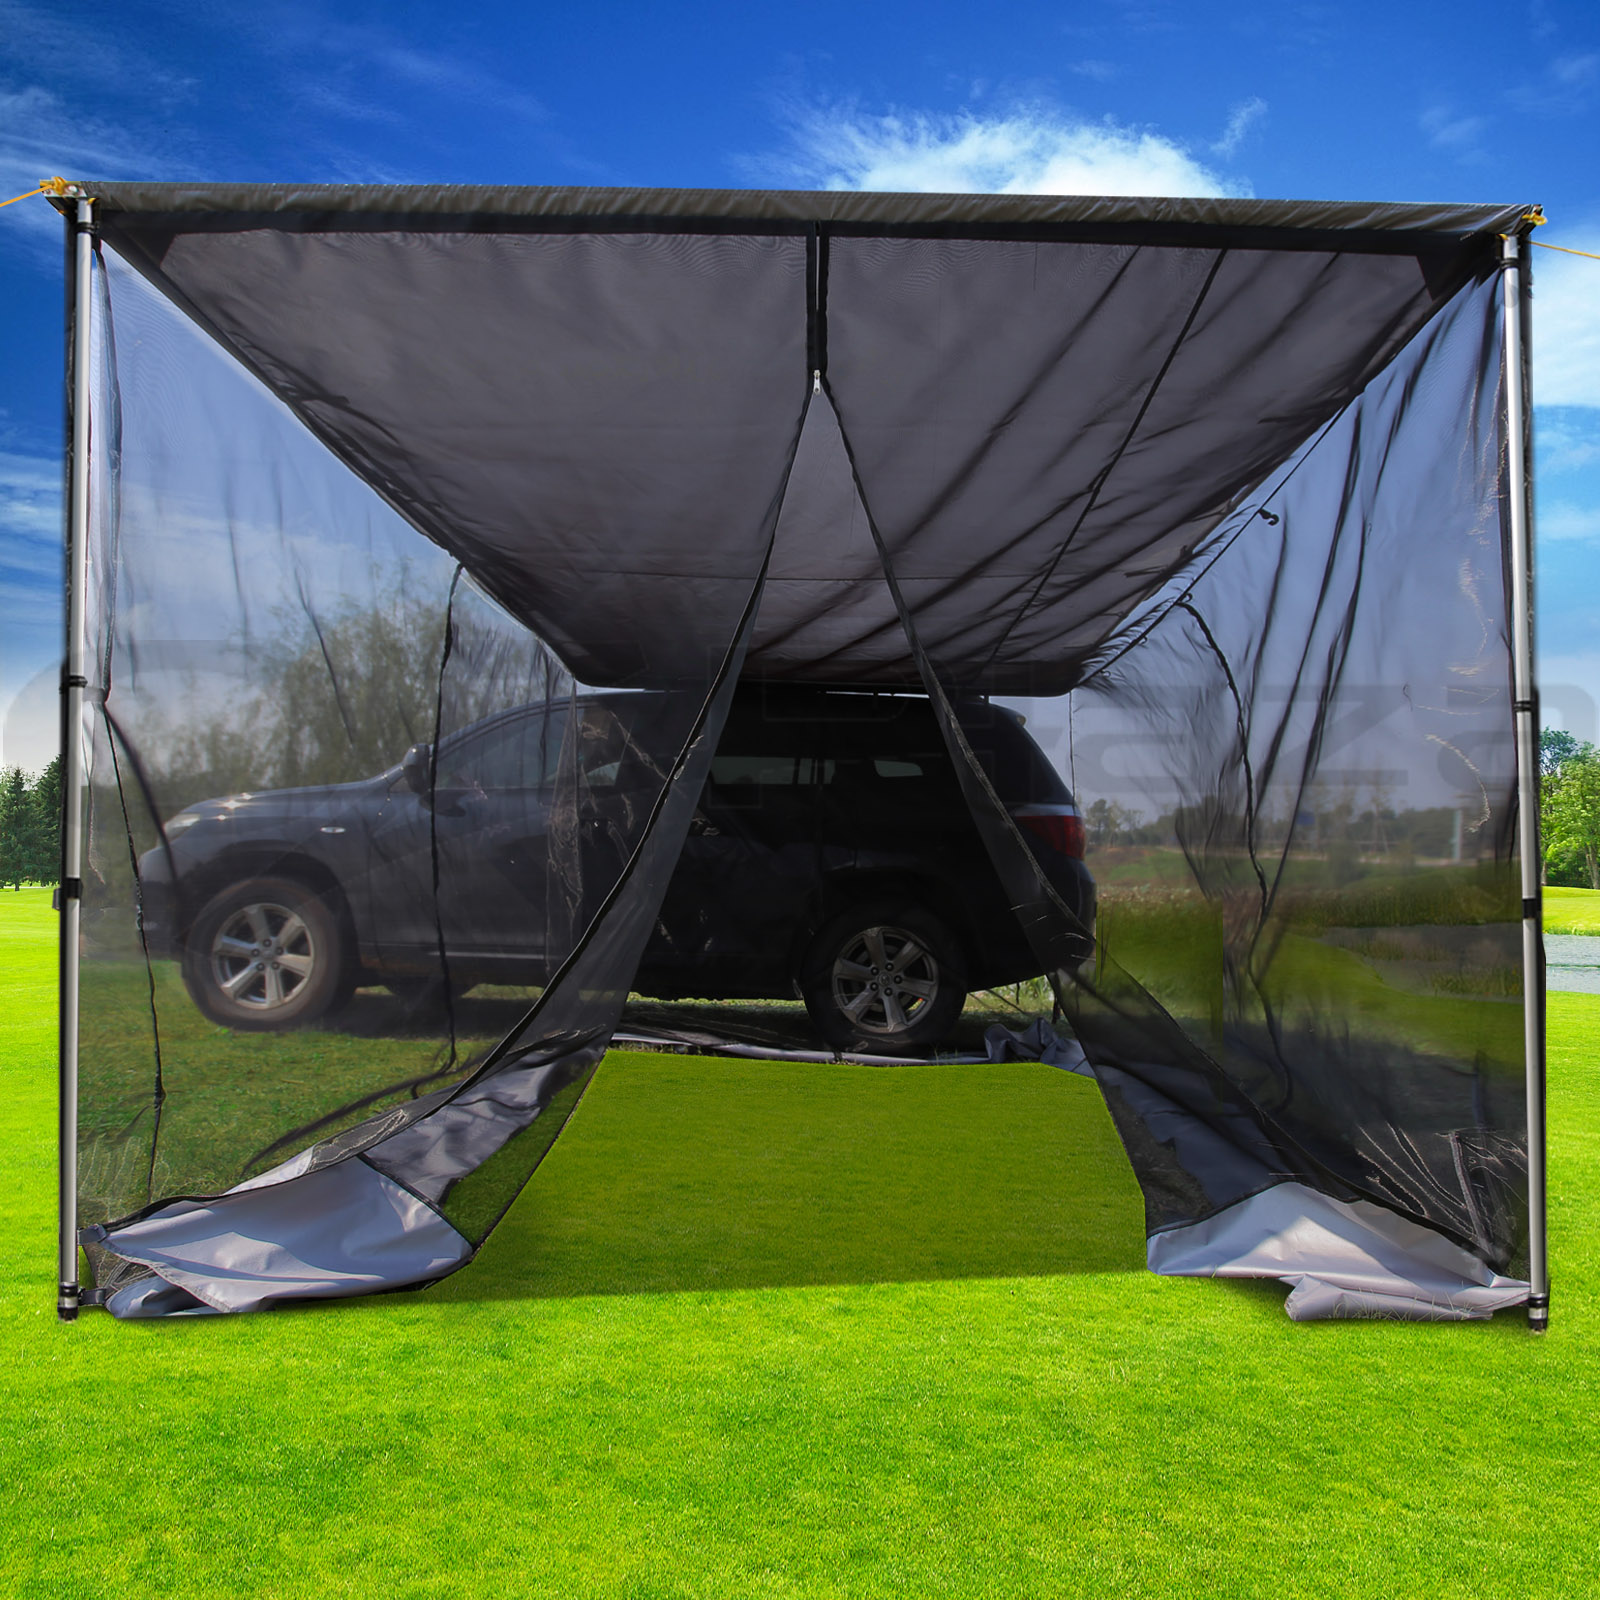 2M 3M CAR AWNING EXTENSION SIDE AWNING SUN SHADE CAMPER